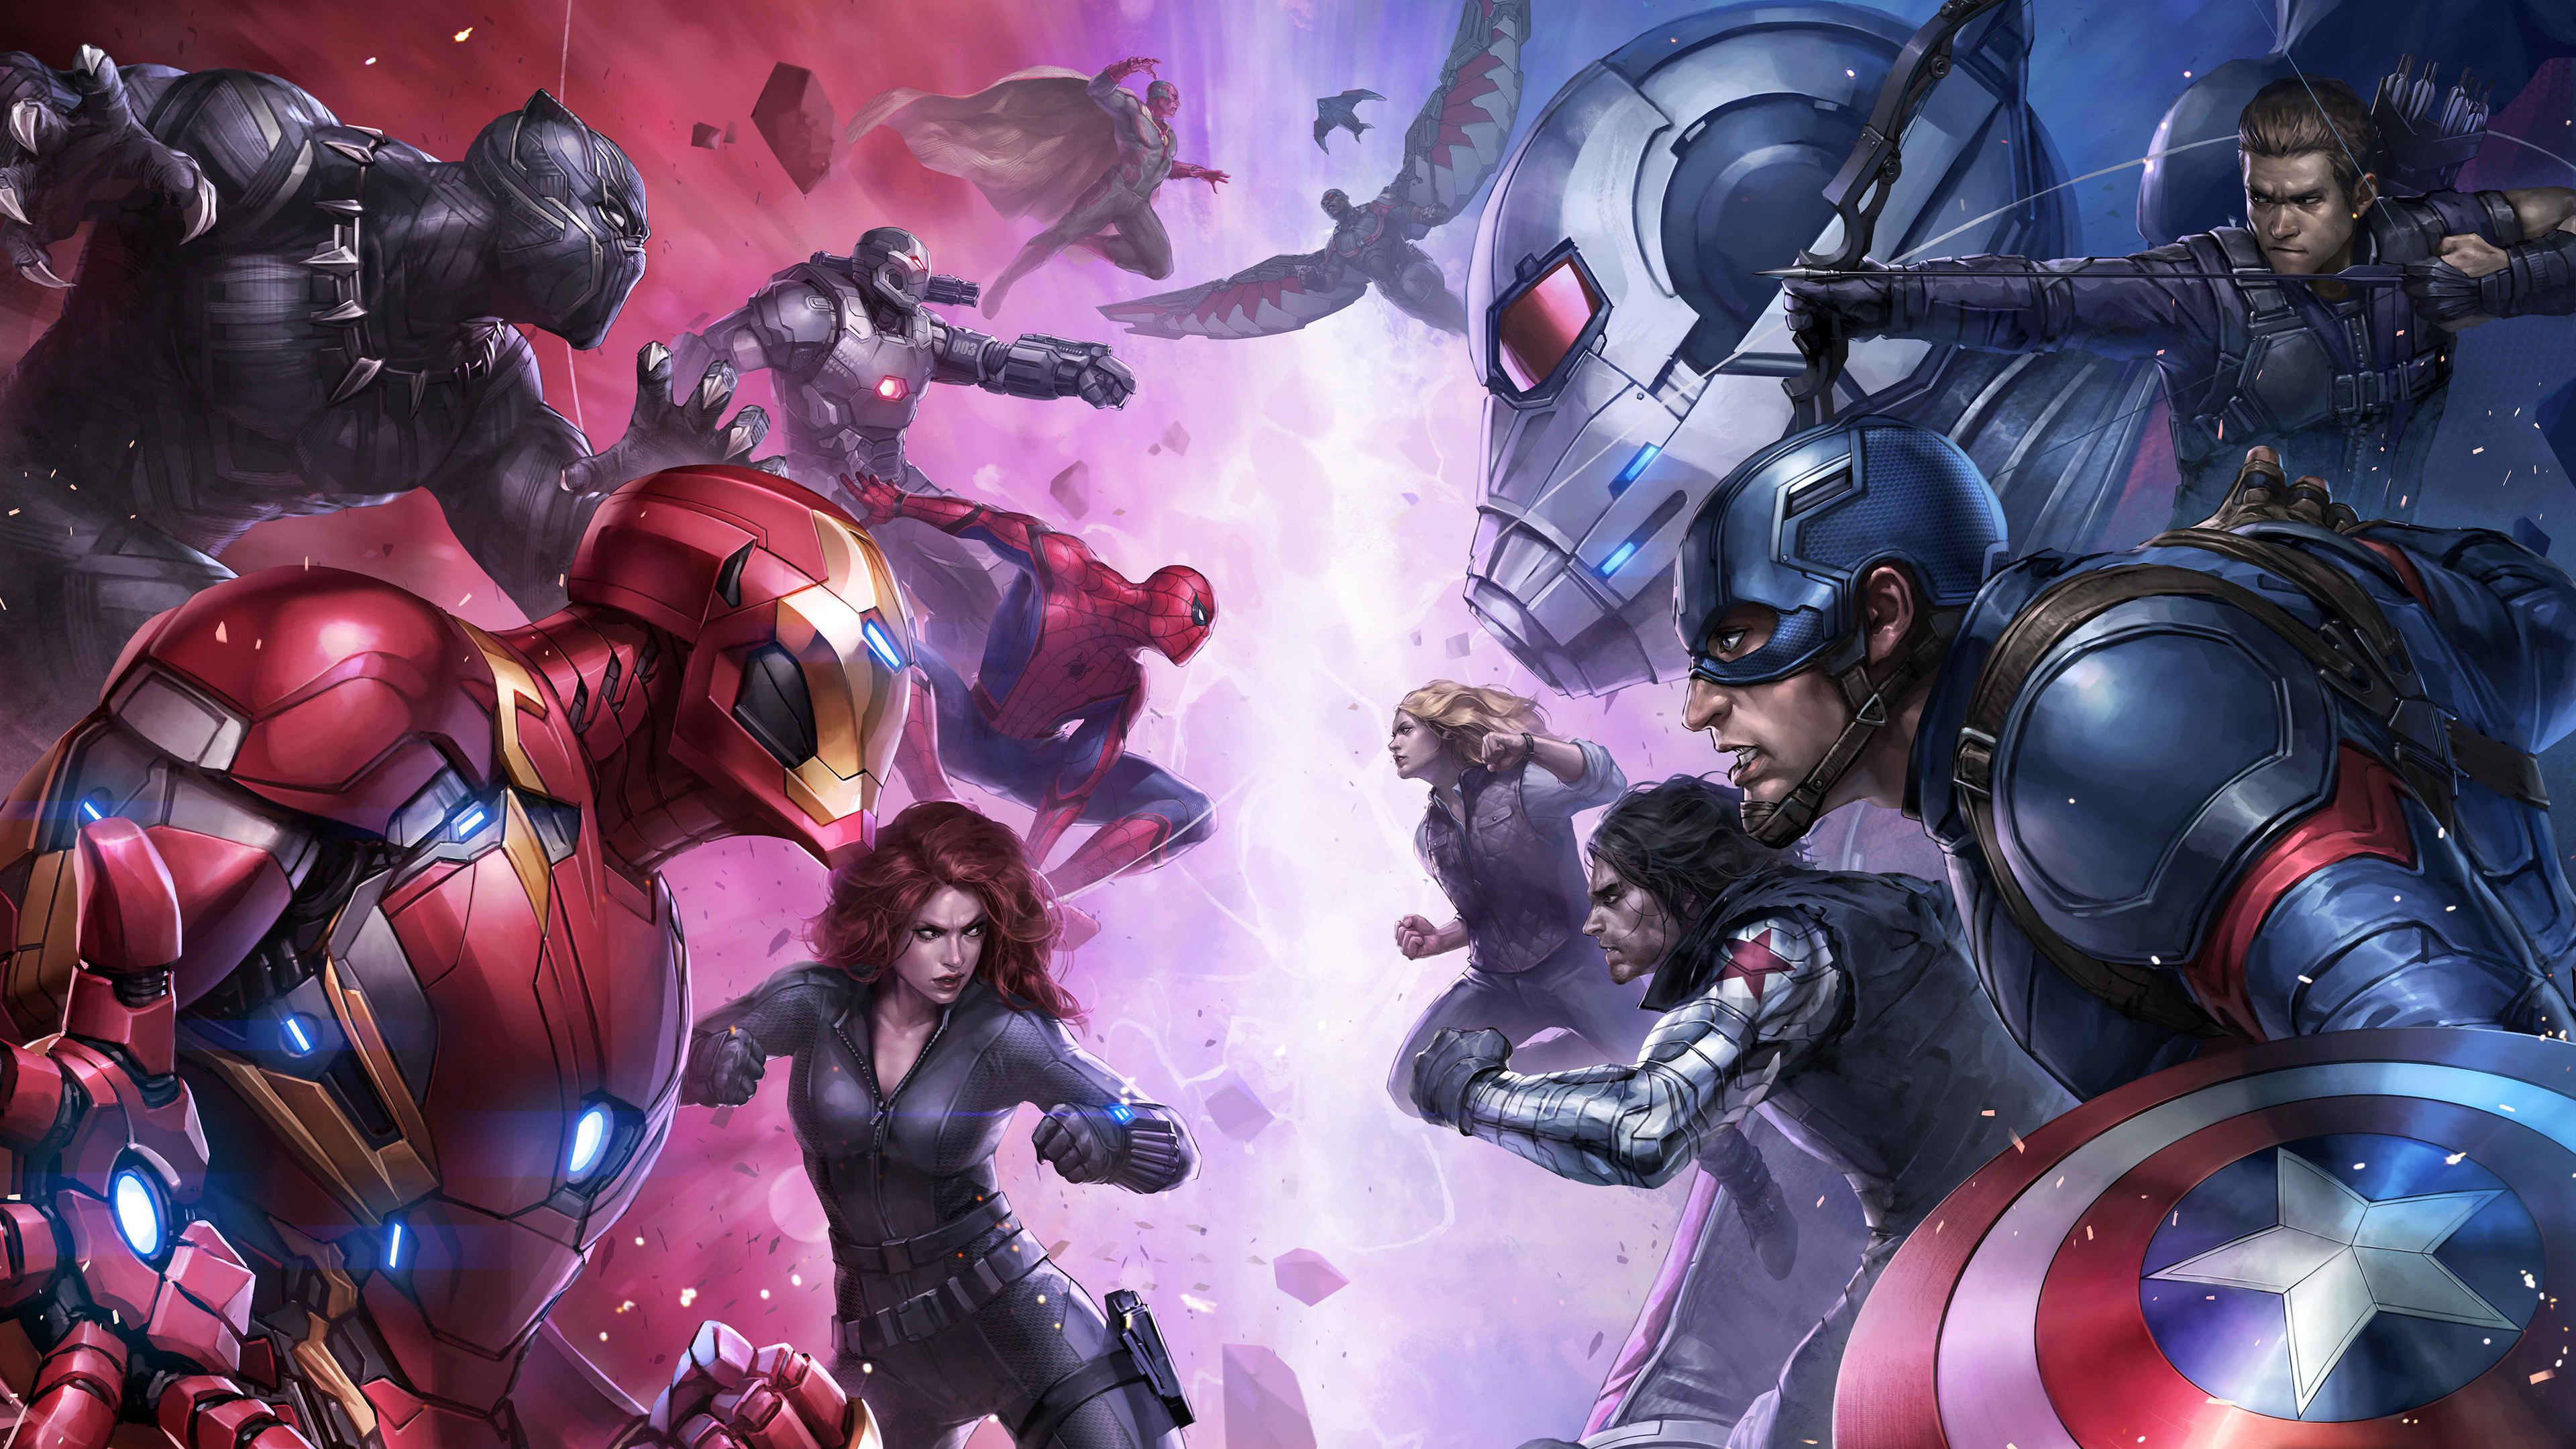 team iron man and team captain america 1536521734 - Team Iron Man And Team Captain America - winter solider wallpapers, war machine wallpapers, vision wallpapers, superheroes wallpapers, spiderman wallpapers, iron man wallpapers, hd-wallpapers, falcon wallpapers, captain america wallpapers, black widow wallpapers, black panther wallpapers, ant man wallpapers, 4k-wallpapers